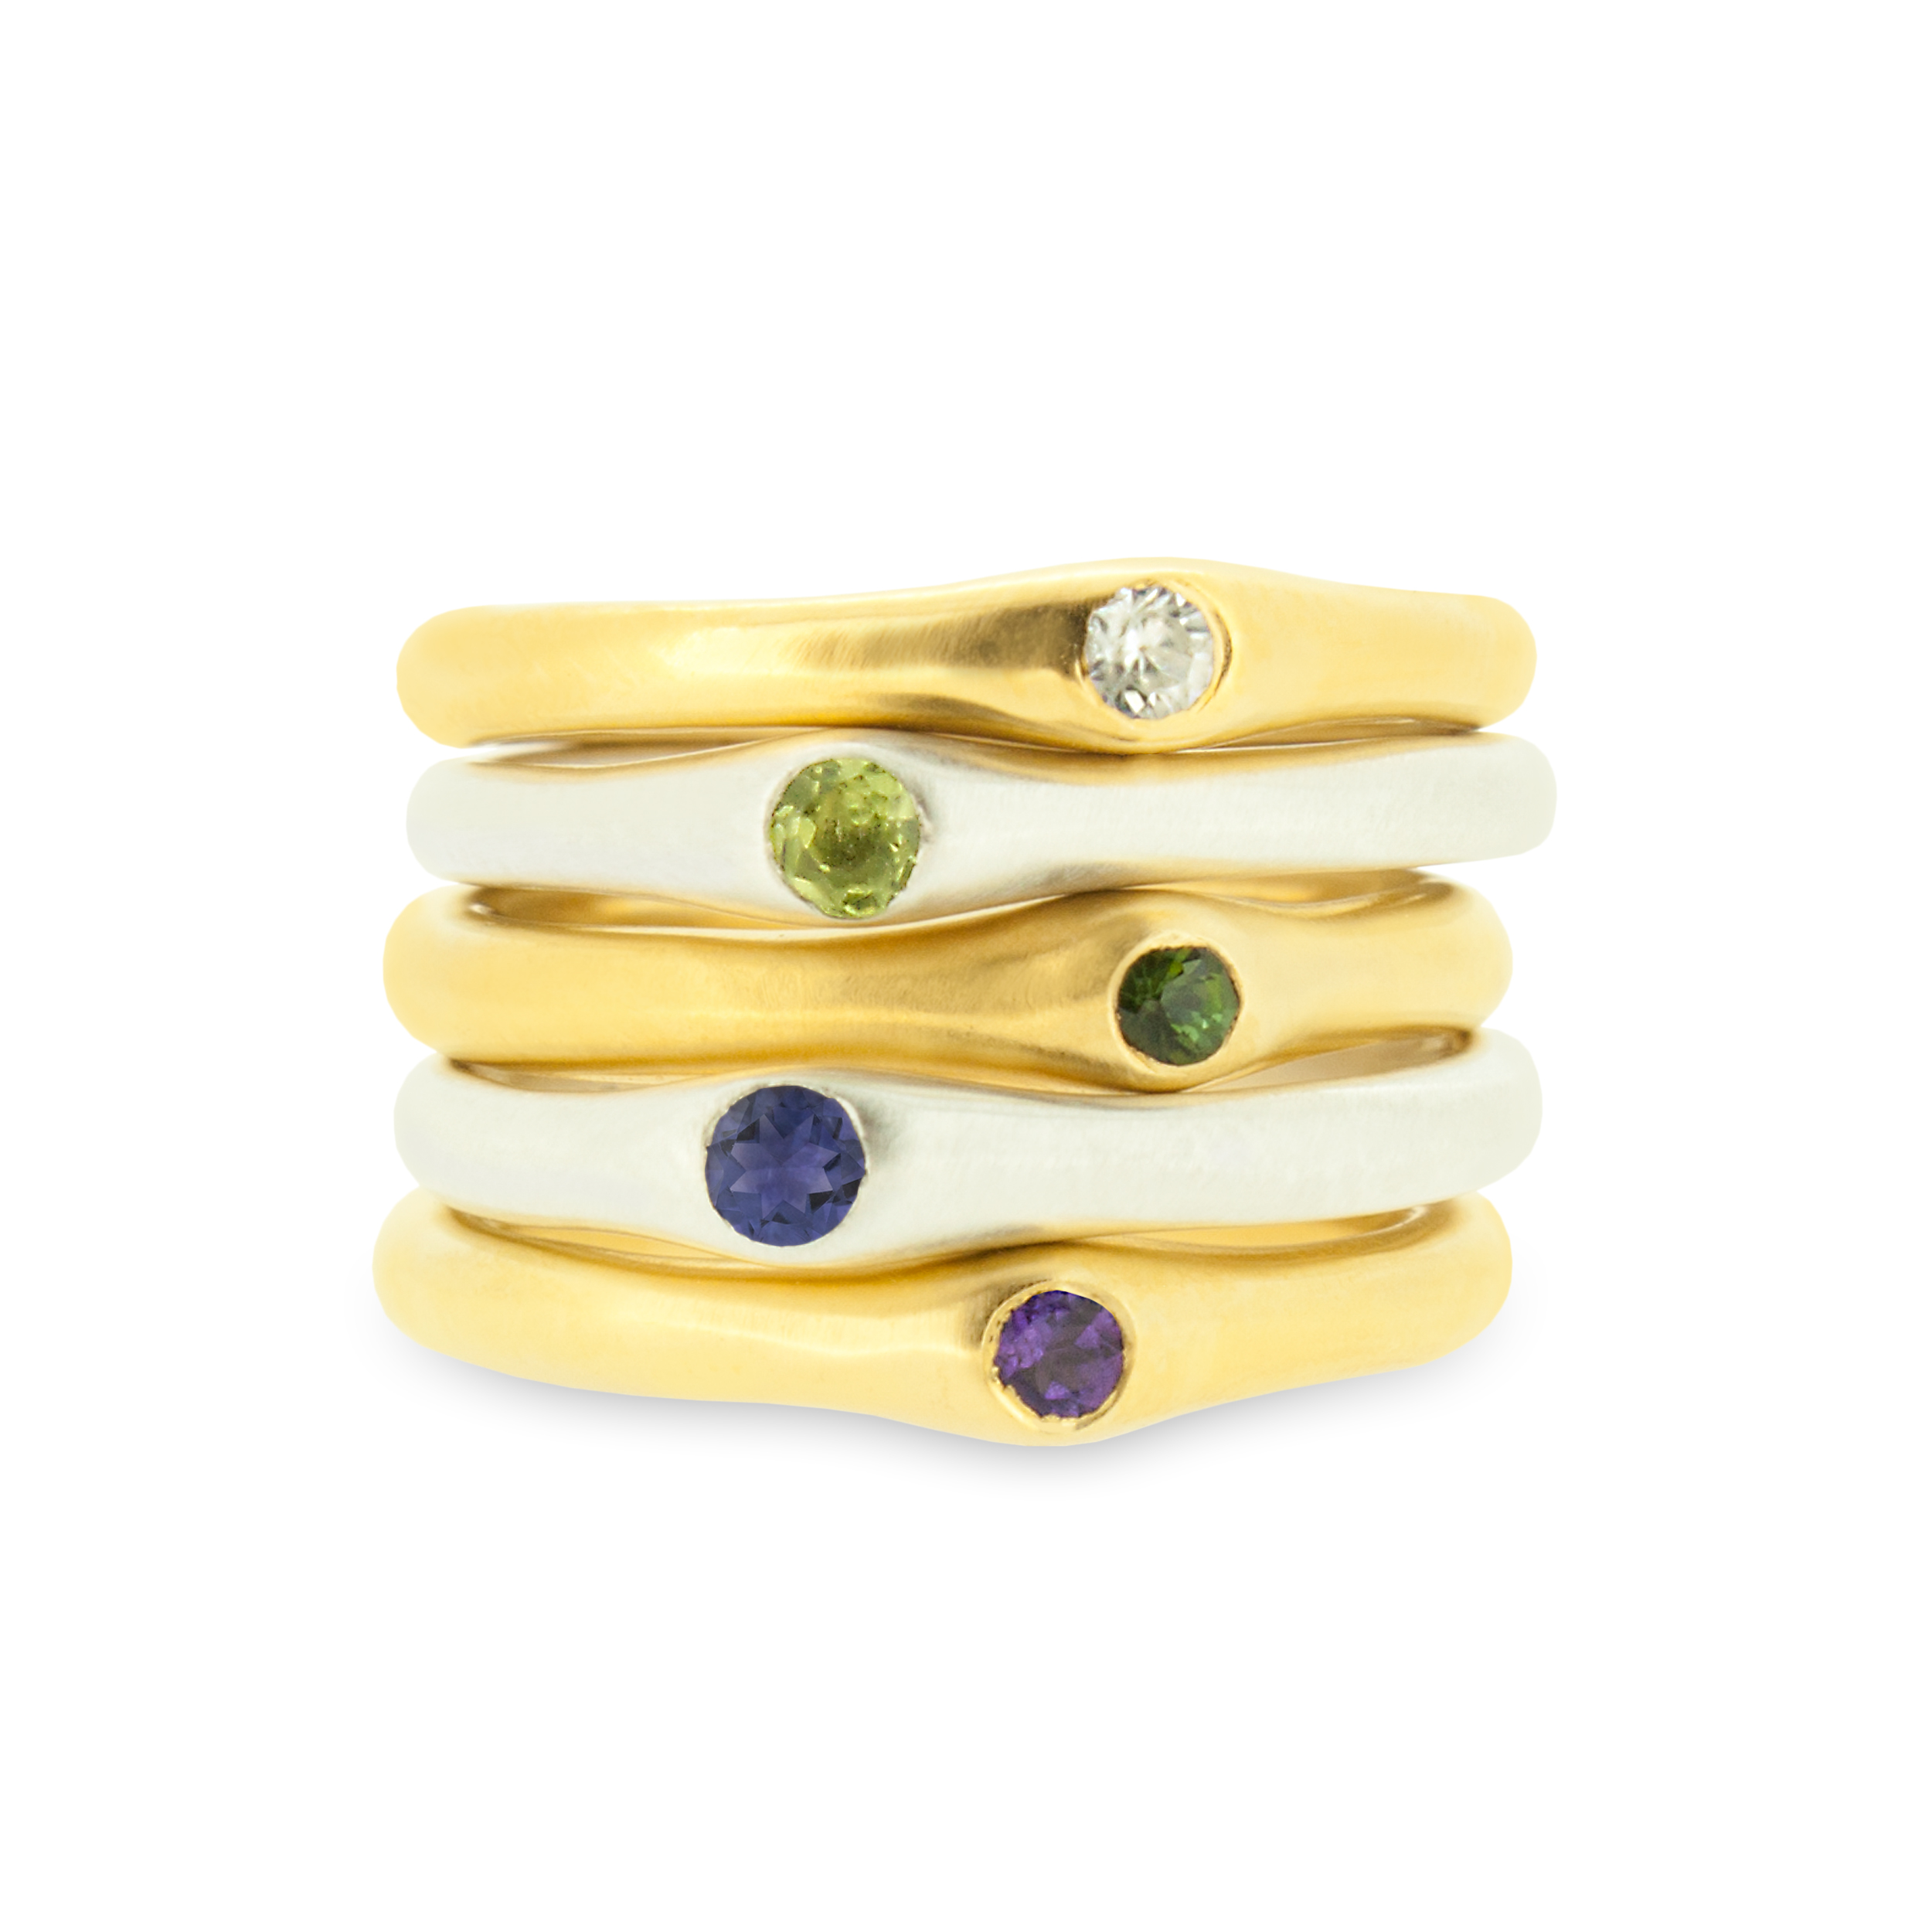 3. Mabel Hasell - Silver and gold plated stack rings.jpg